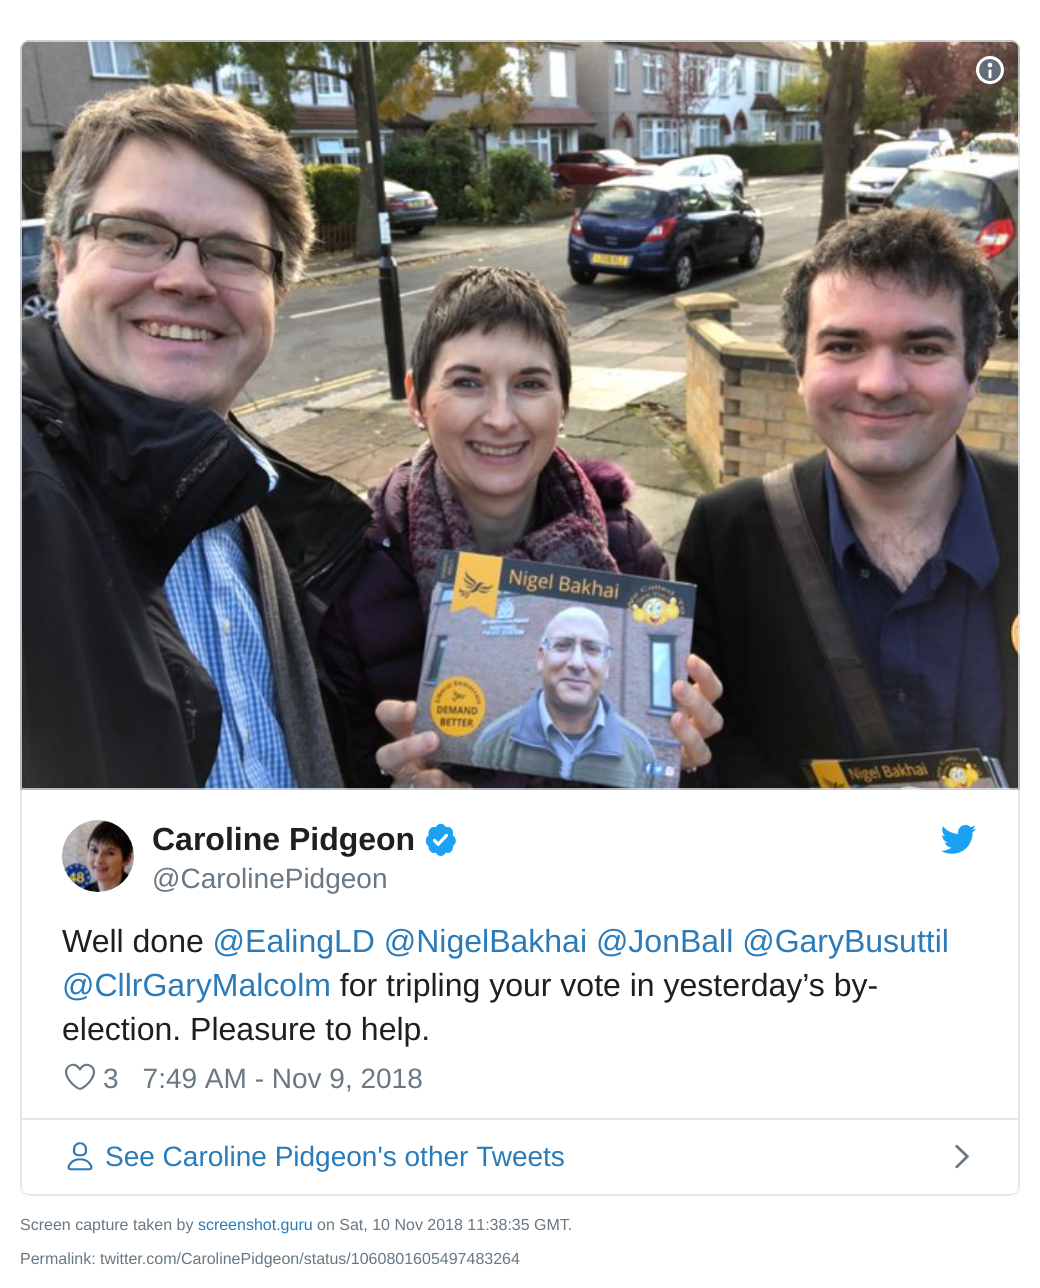 Caroline Pidgeon tweet about Lib Dem vote share going up in Ealing by-election